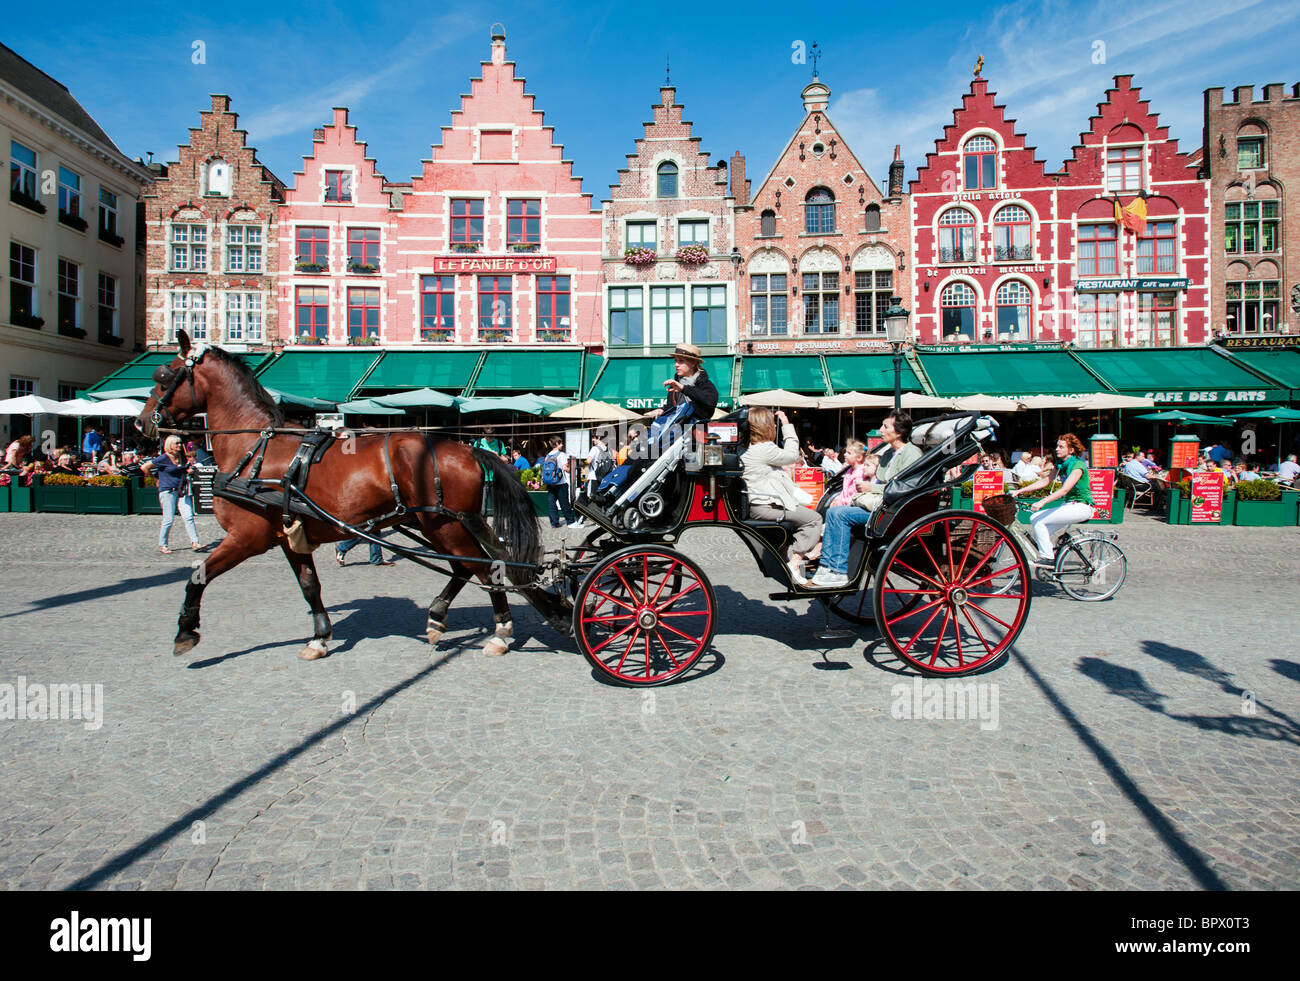 Tourists enjoying tour of Bruges in Belgium on horse drawn carriage - Stock Image